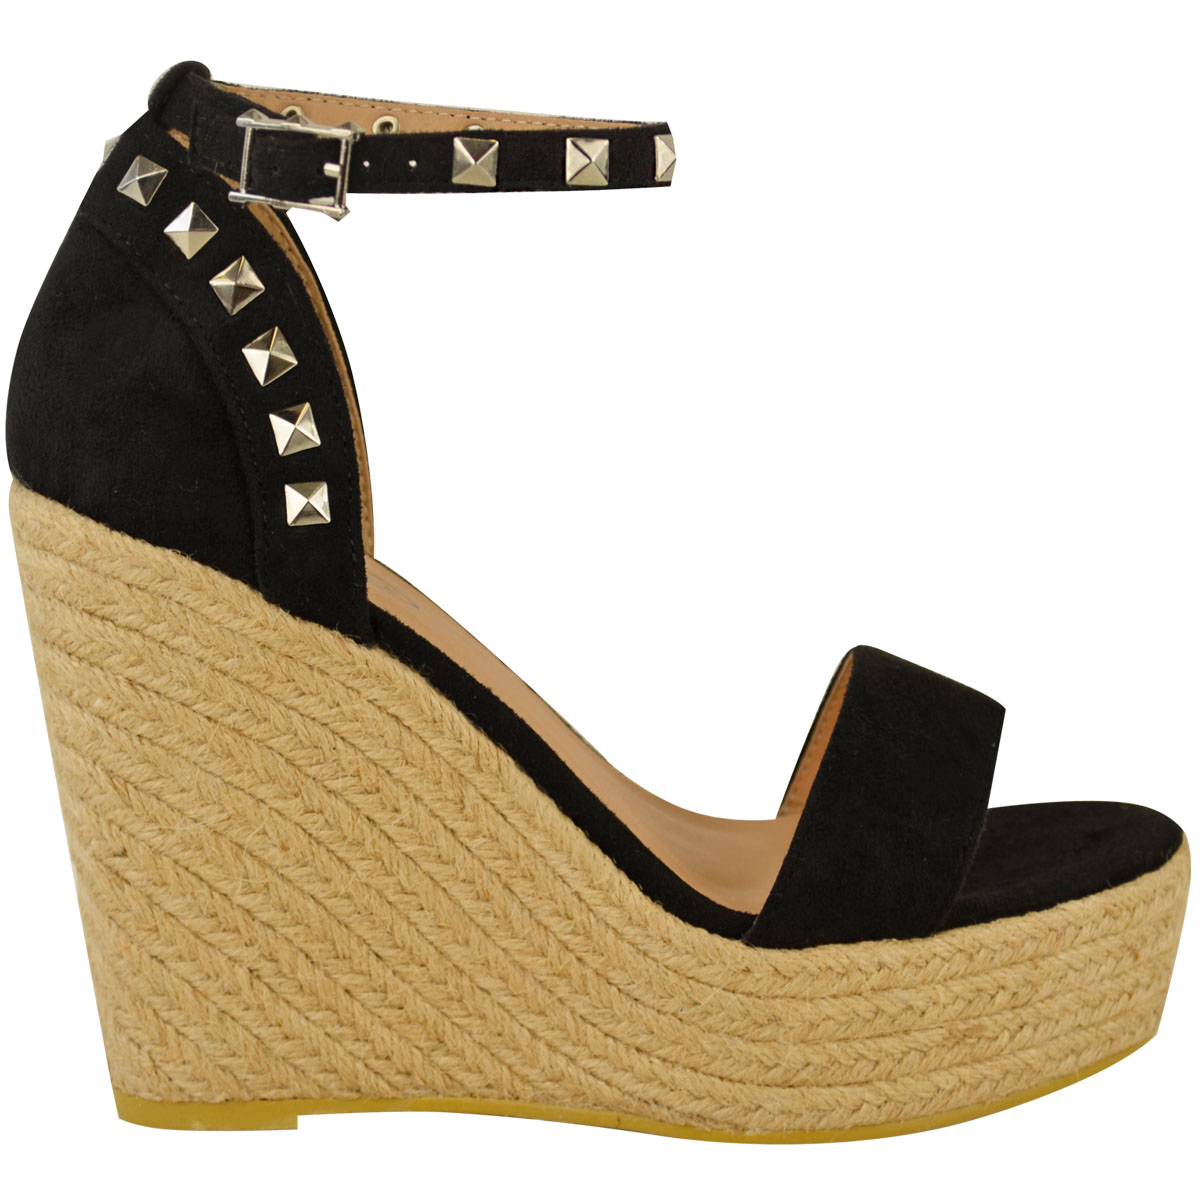 New-Womens-Stud-Espadrille-Wedge-Summer-Sandal-Ladies-Rose-Gold-Party-Shoes-Size thumbnail 3